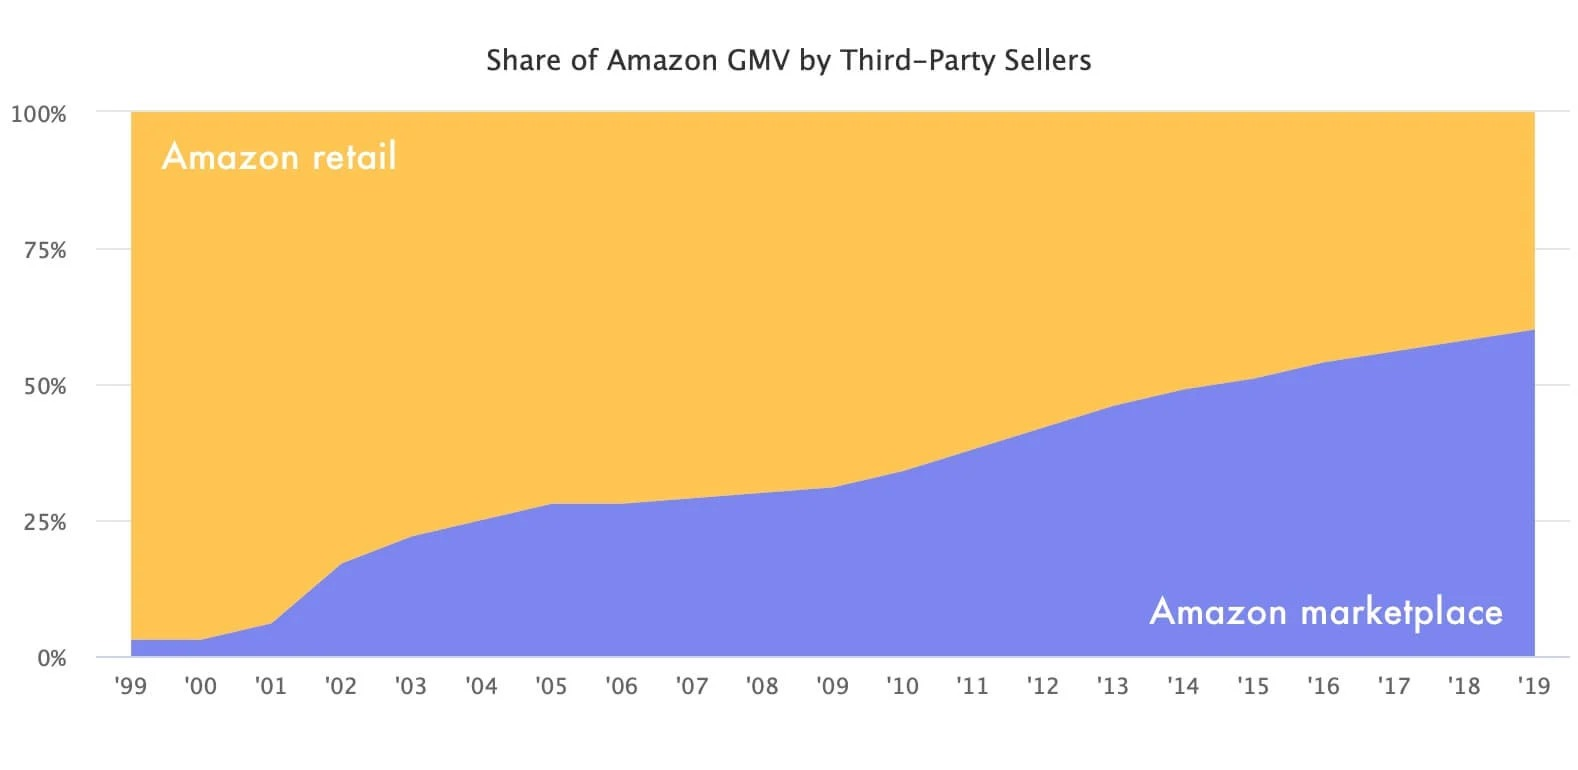 share-of-amazon-gmv-by-third-party-sellers1-1611138804.jpg